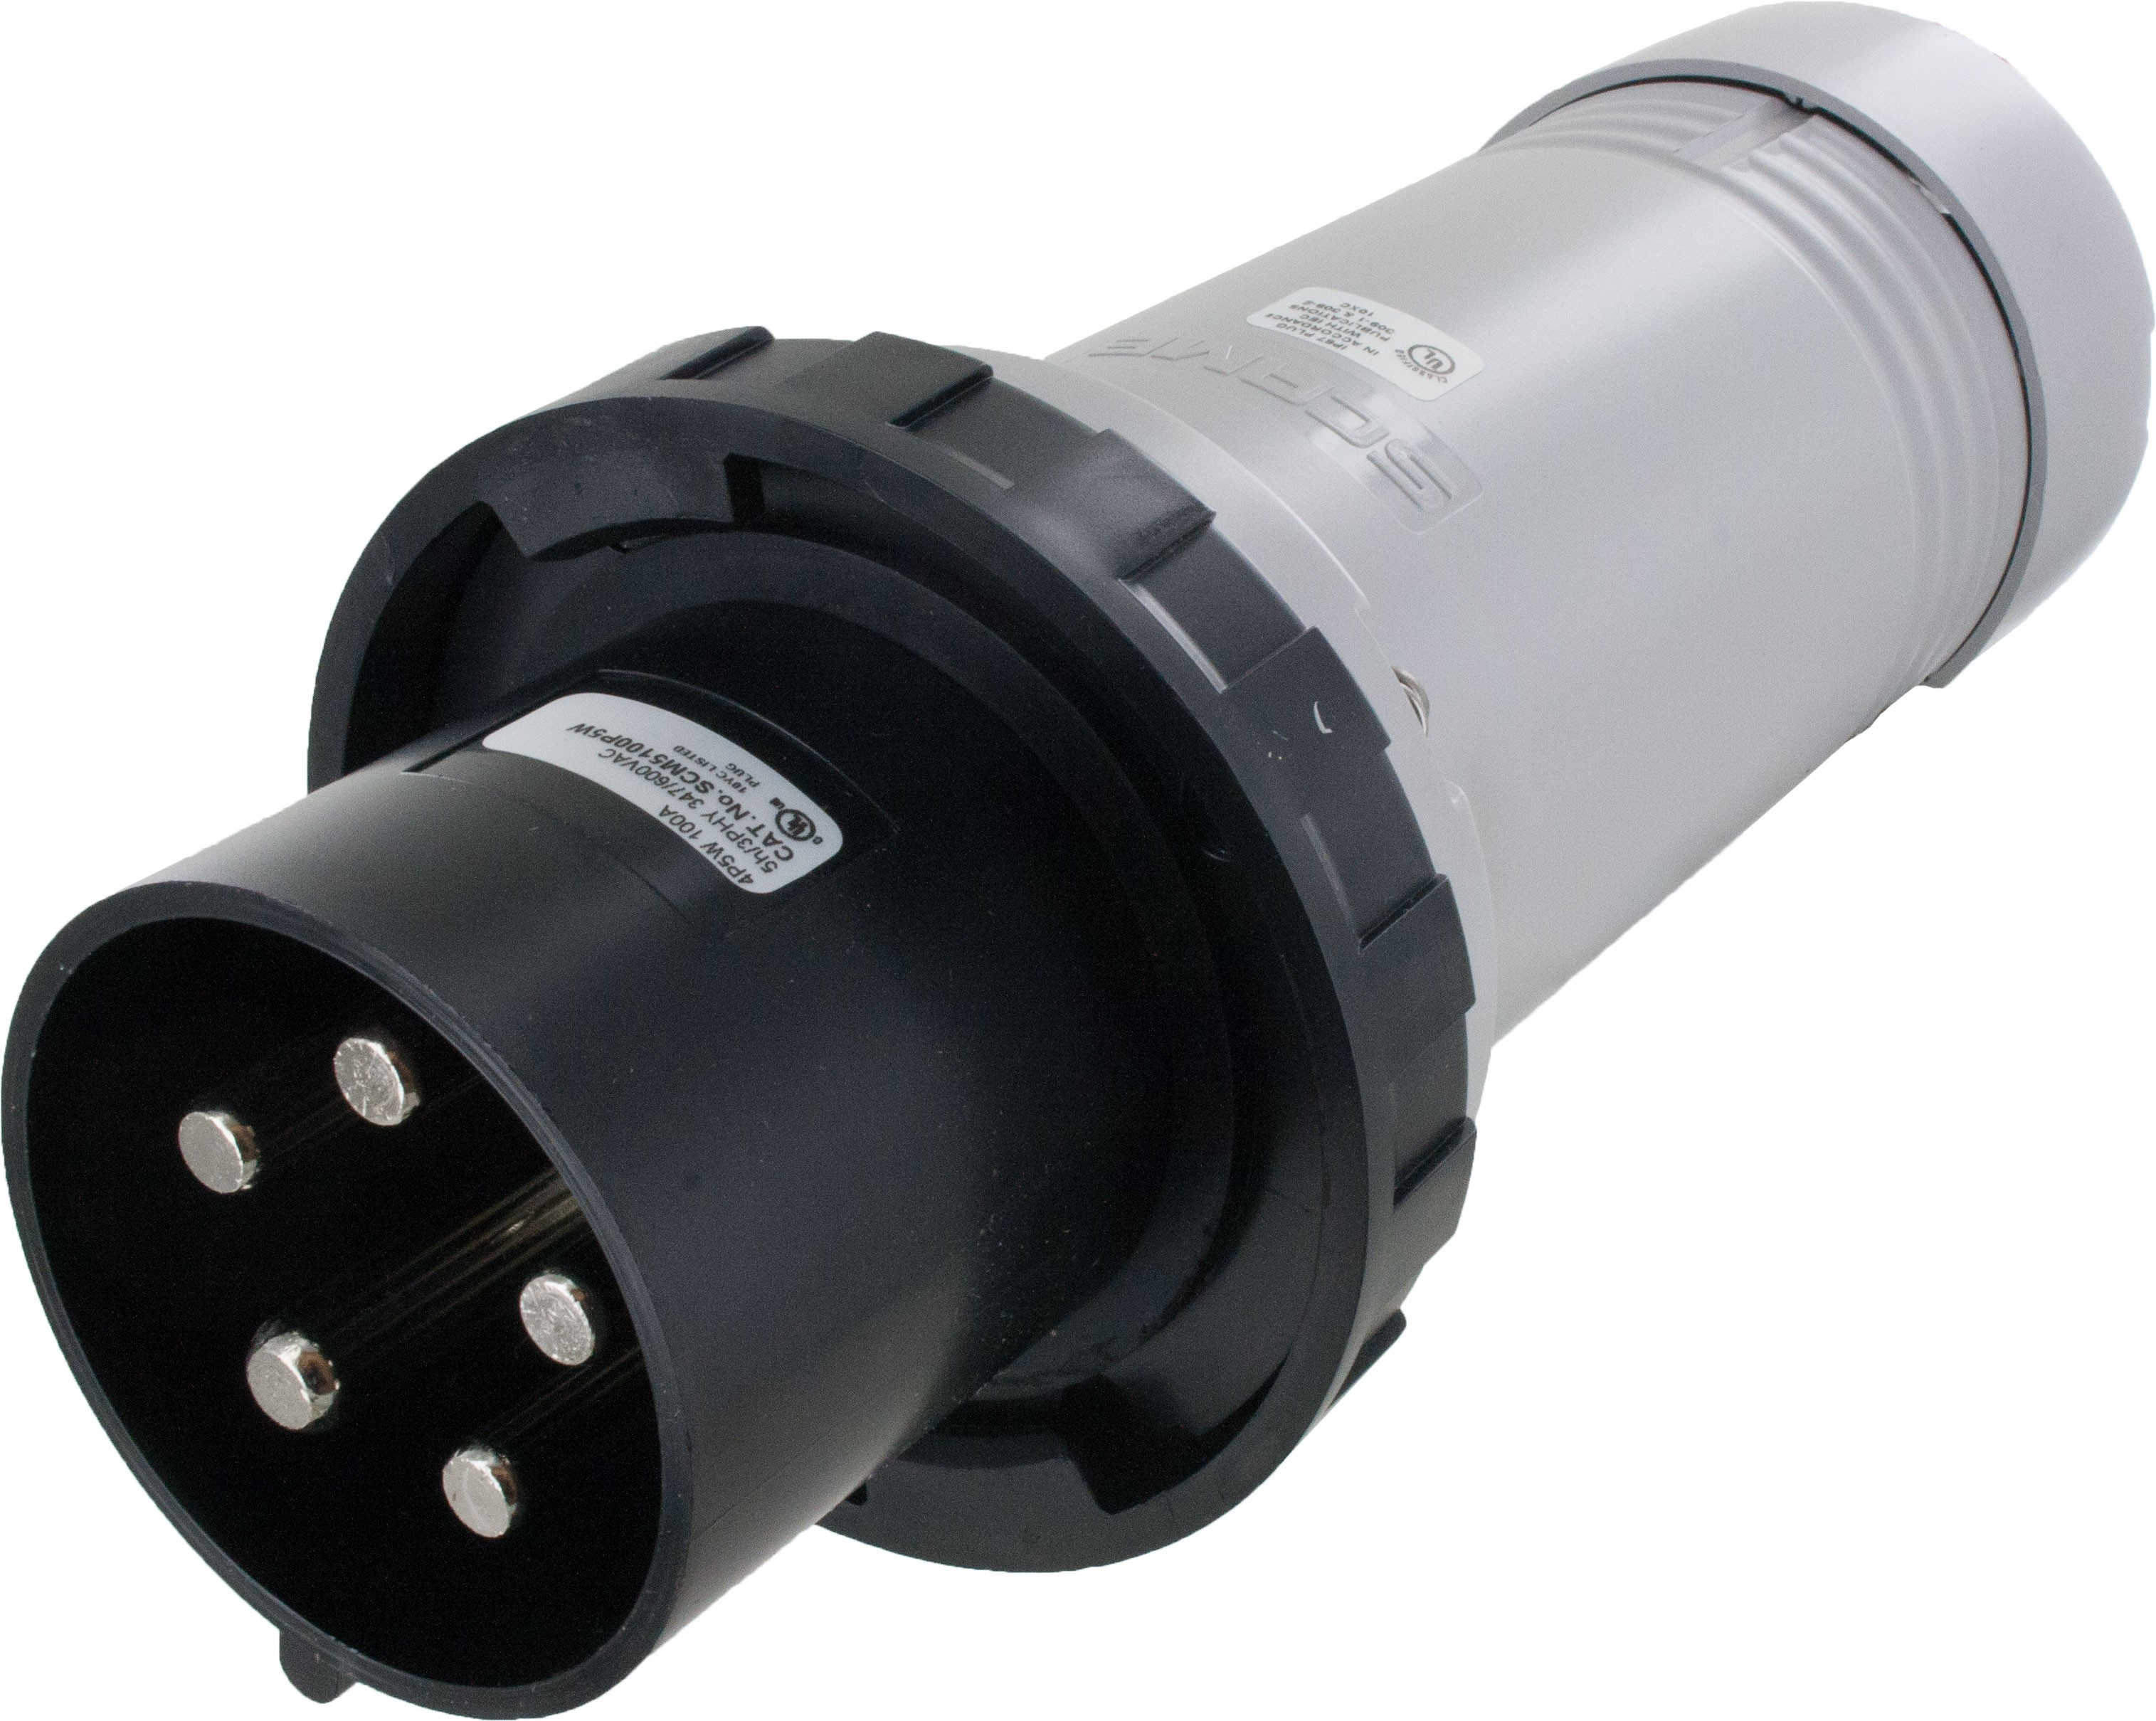 5100P5W Pin And Sleeve Plug 100 Amp 4 Pole 5 Wire